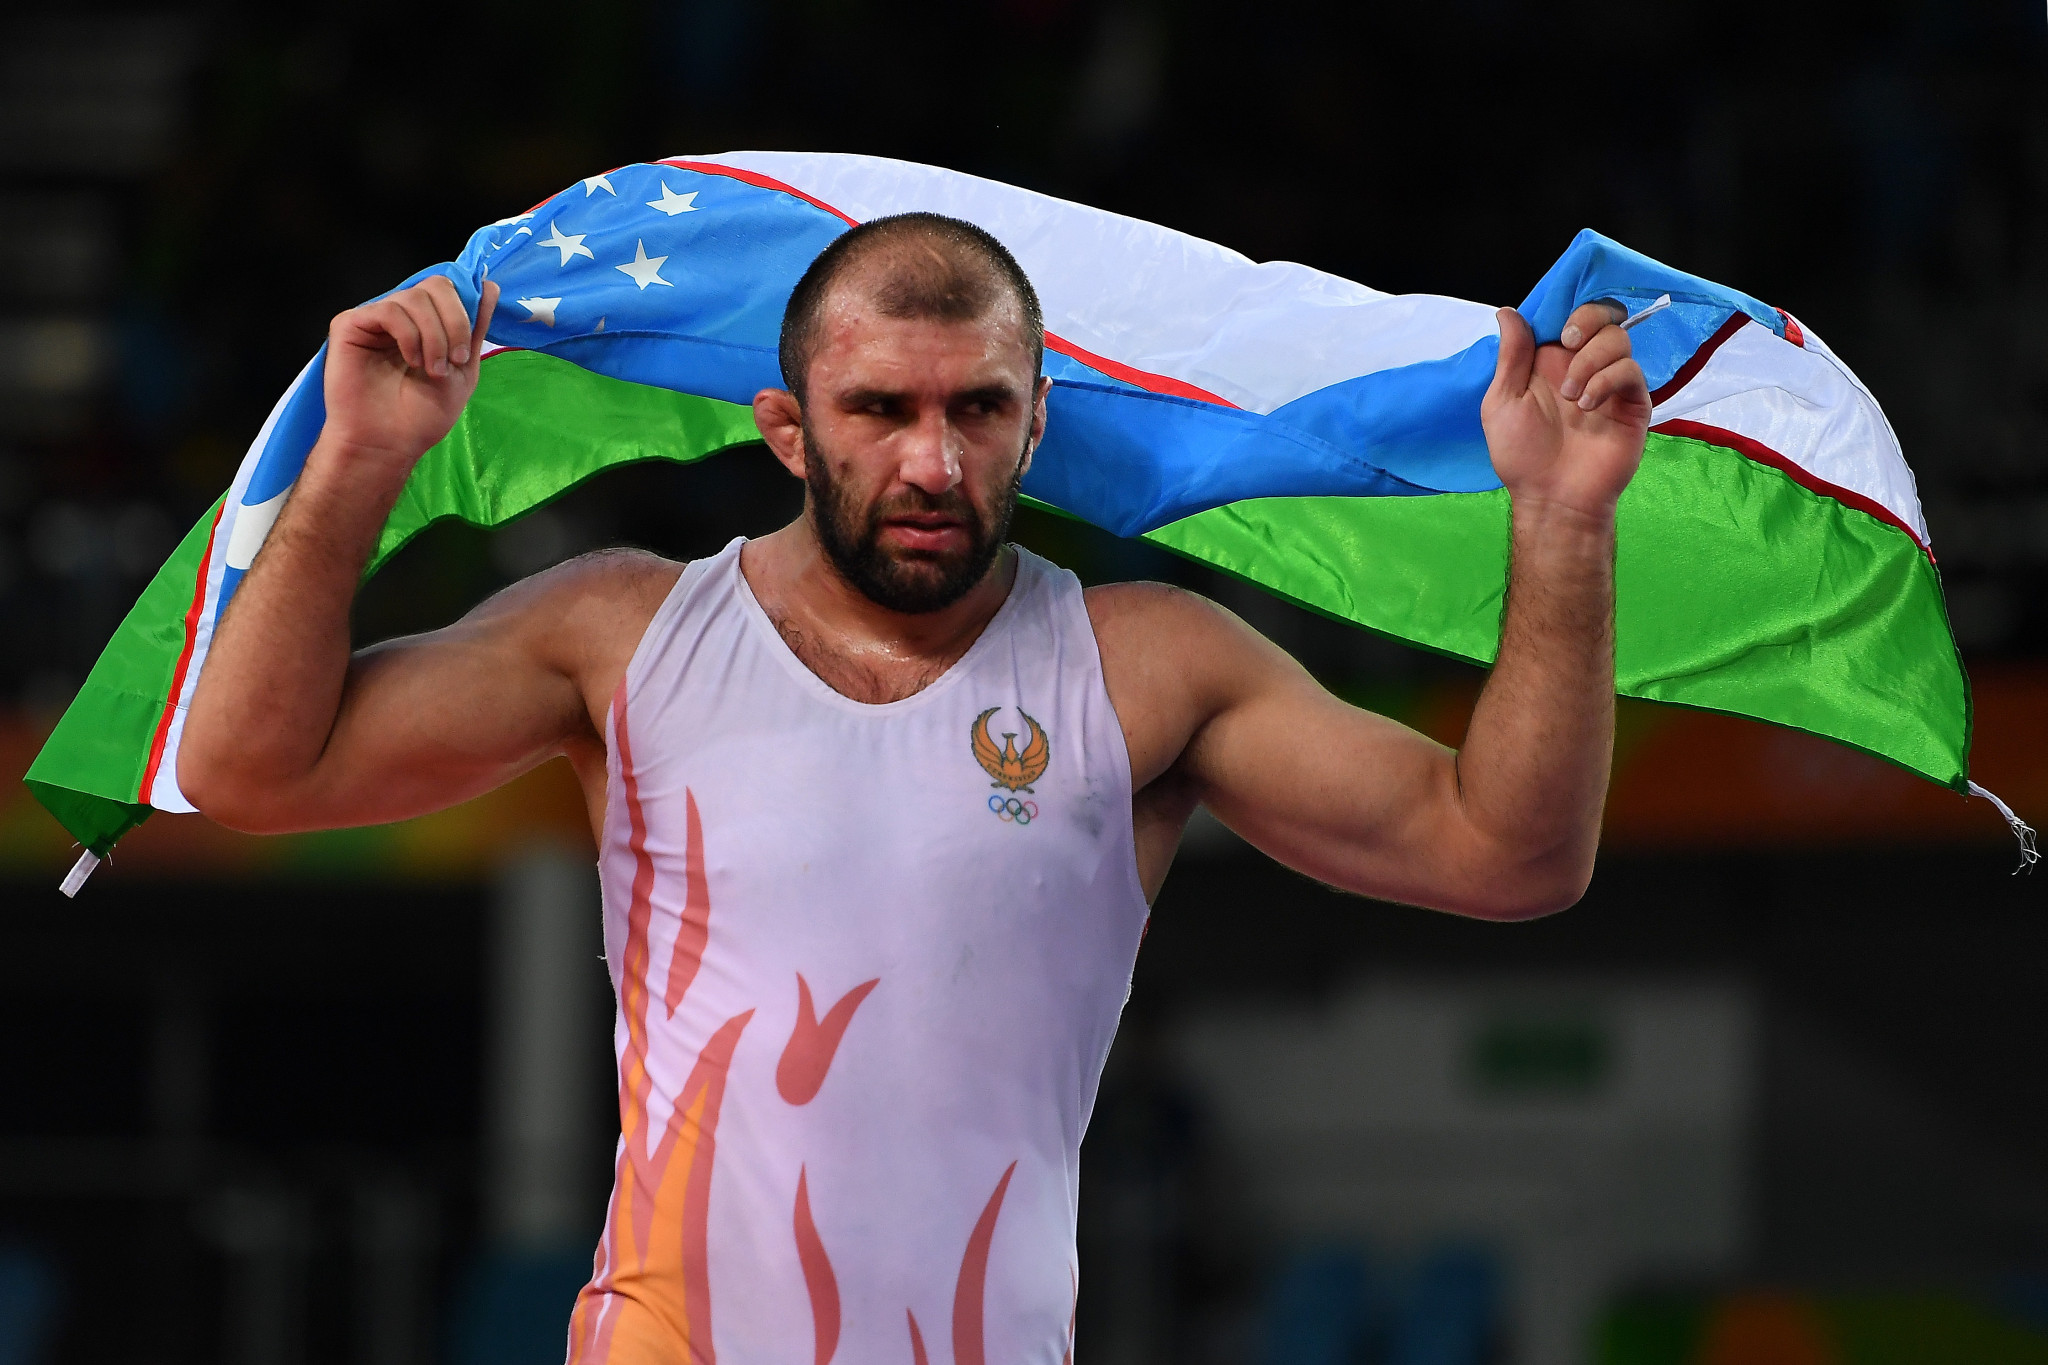 Magomed Ibragimov was one of four wrestlers from Uzbekistan to qualify for Tokyo 2020 today ©Getty Images